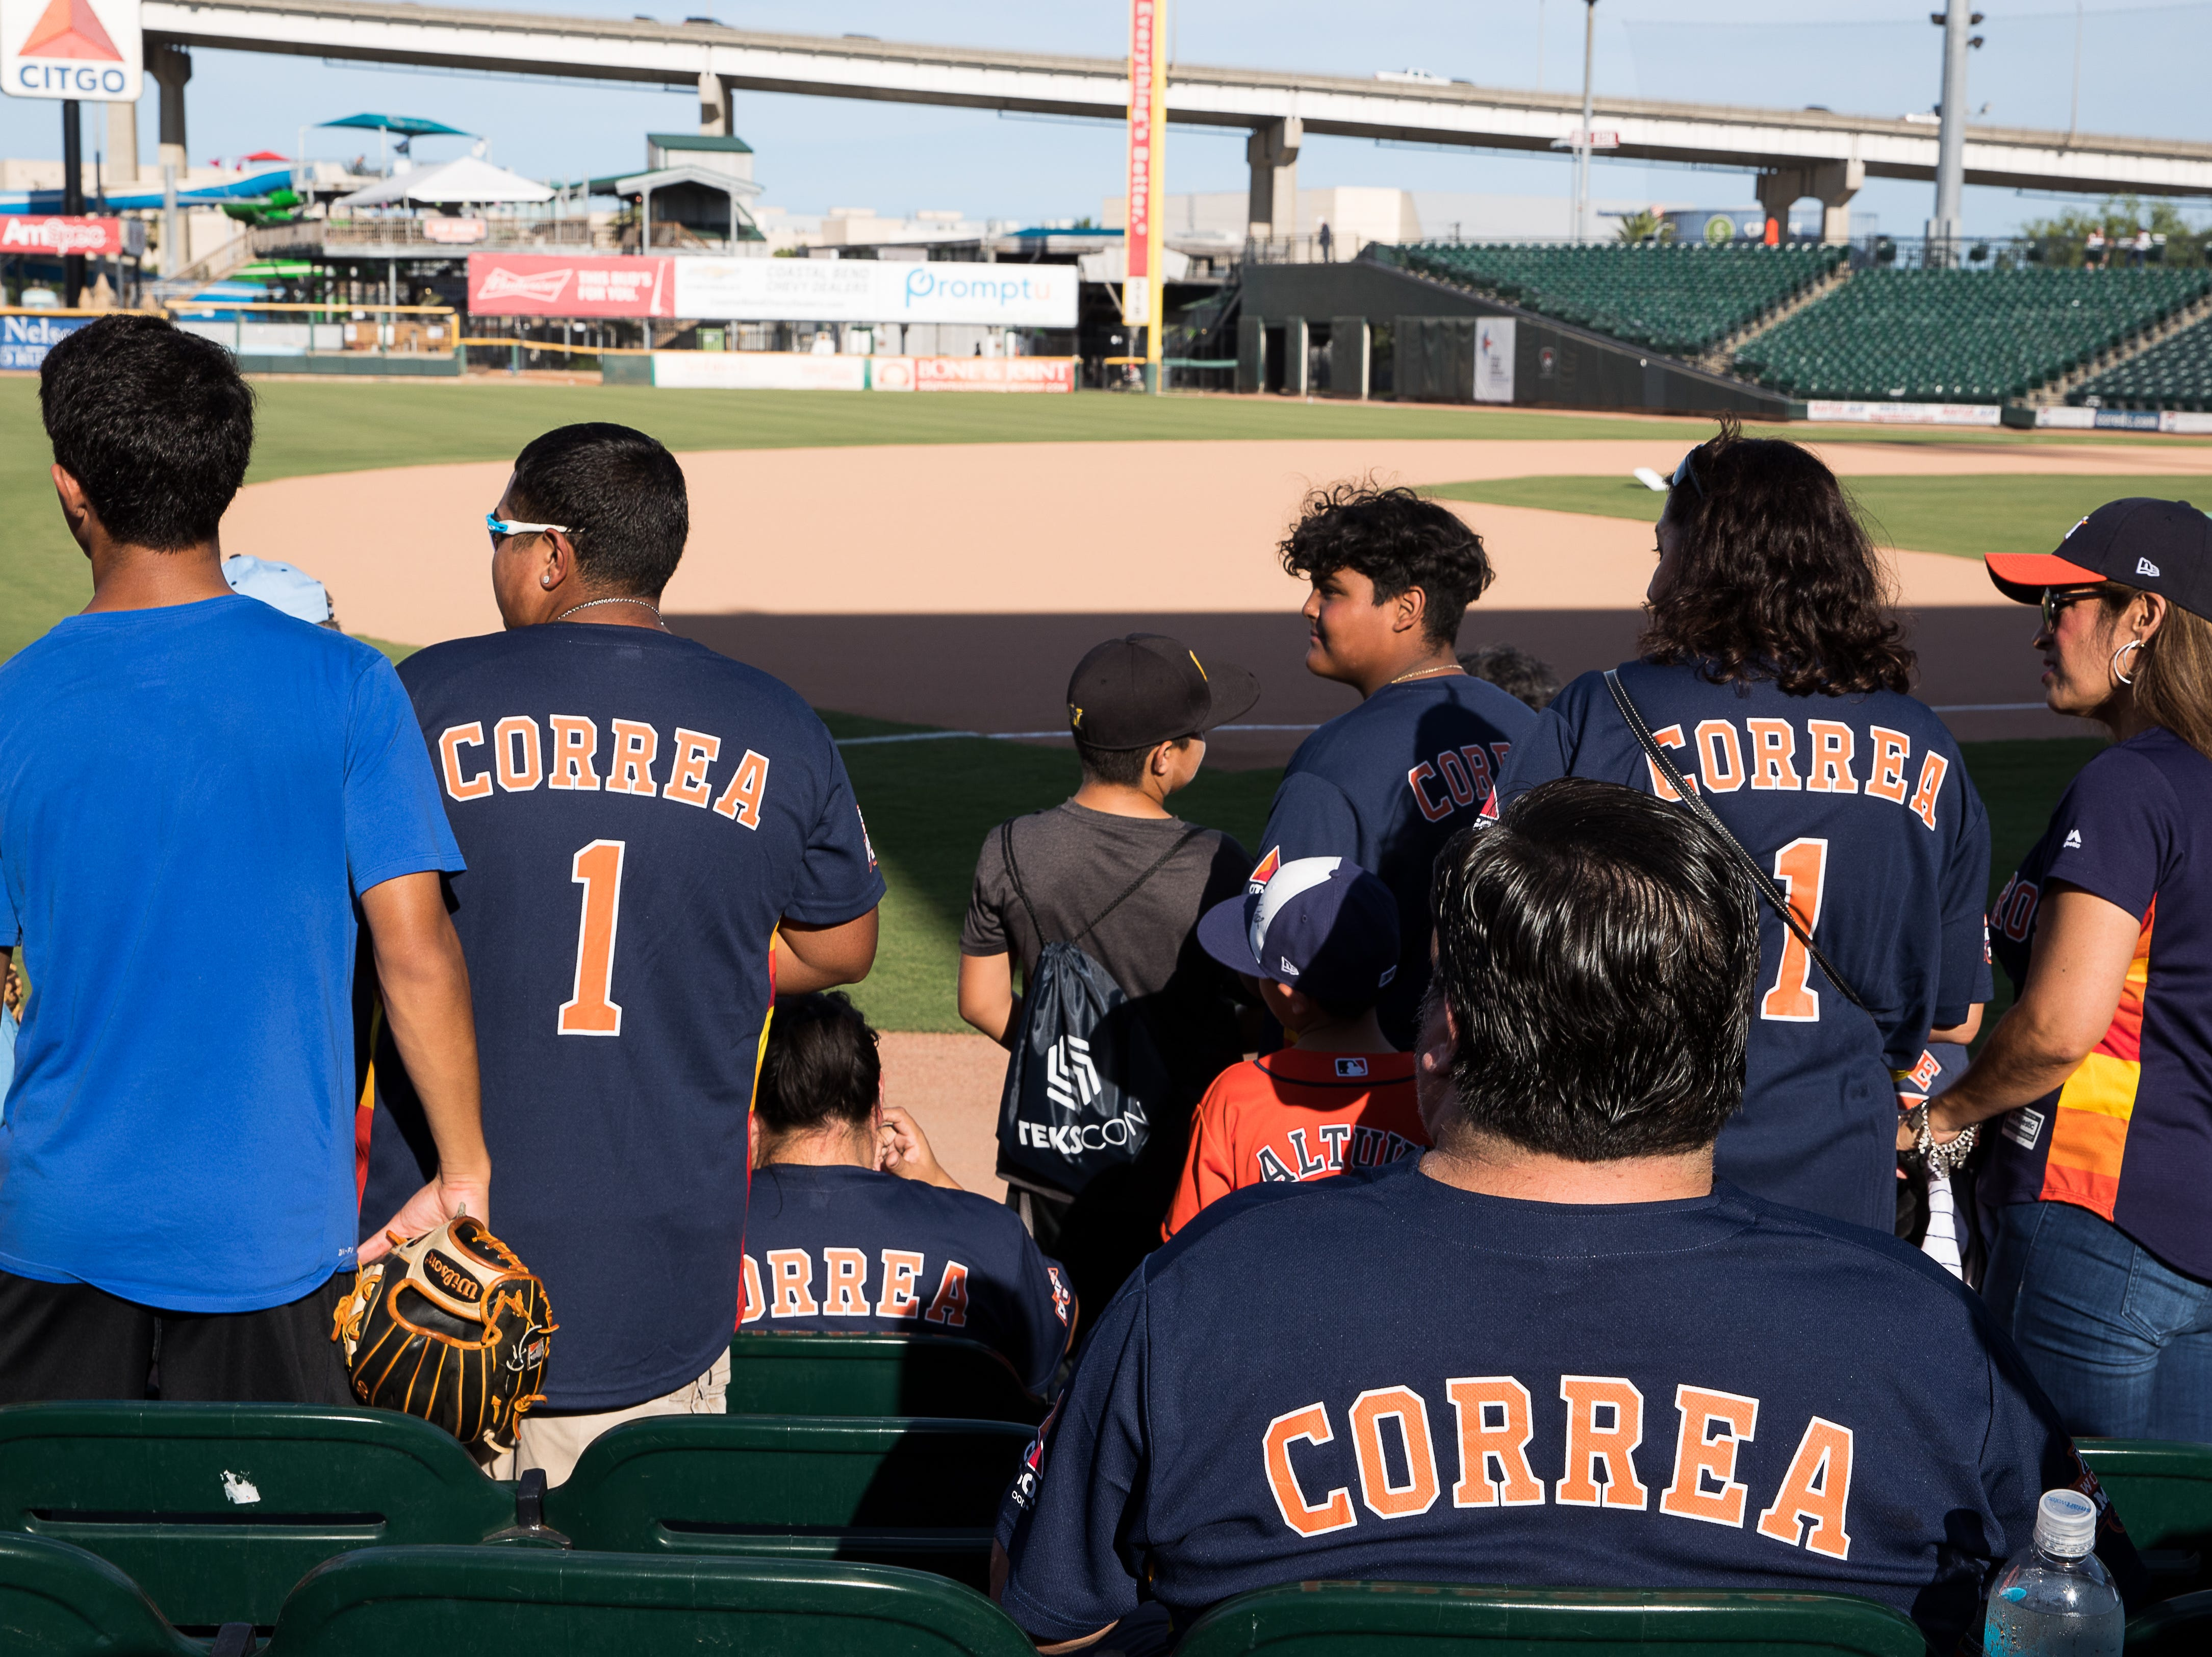 Fans in Carlos Correa Astros jerseys sit in the stands at Whataburger Field before the Hooks game where Correa is playing on a rehab assignment Tuesday, Aug. 7, 2018.